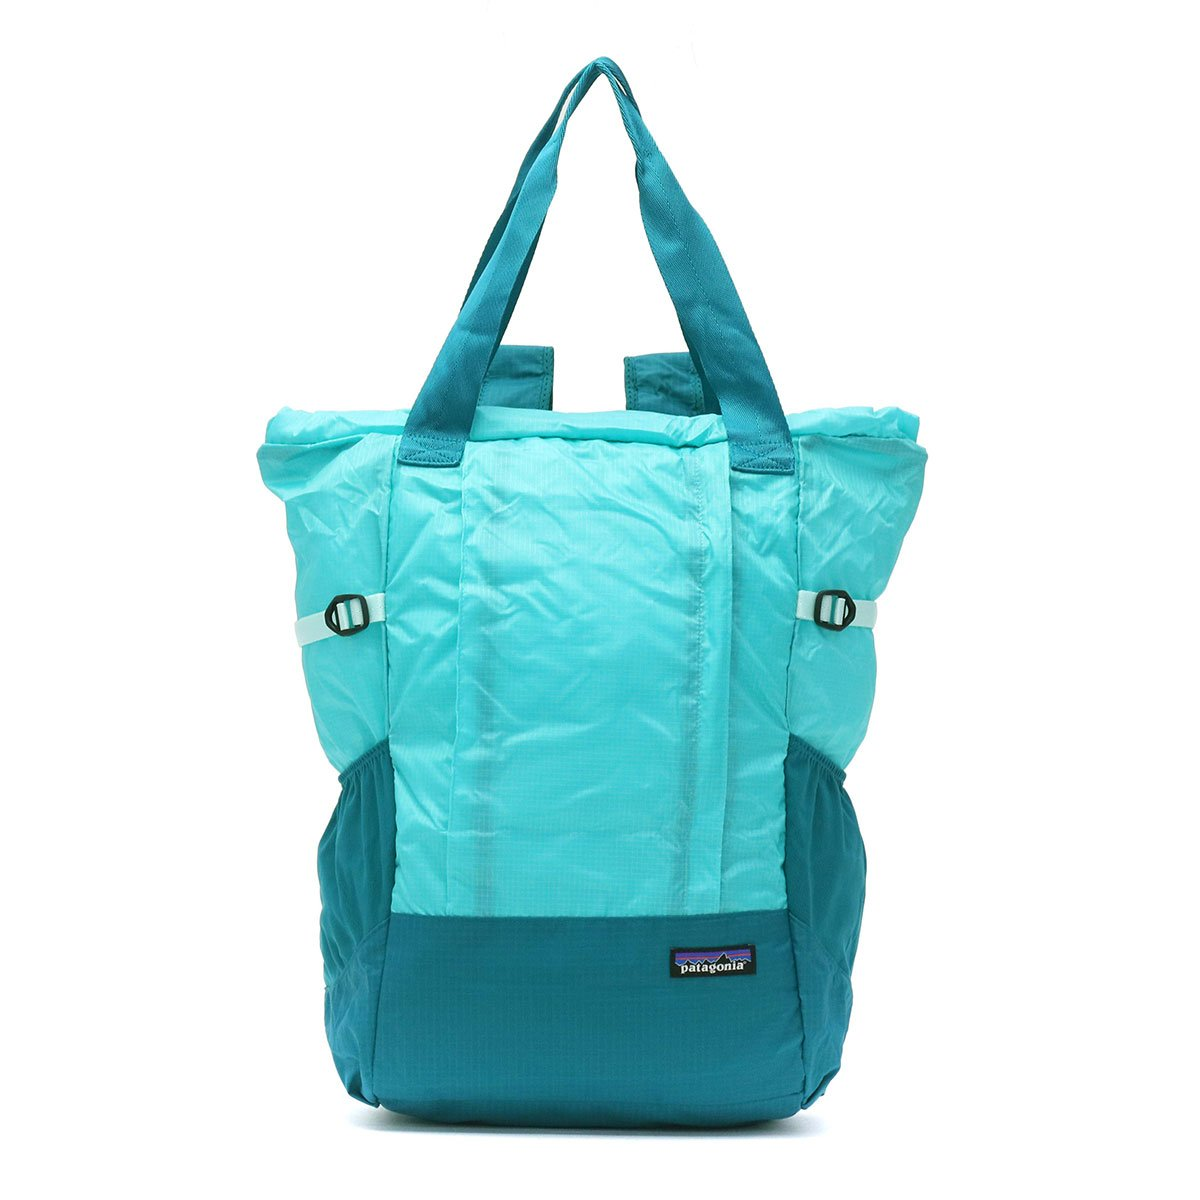 [パタゴニア] patagonia トートバック LW Travel Tote Pack B0734KY7N3 StraitBlue(STRB) StraitBlue(STRB)